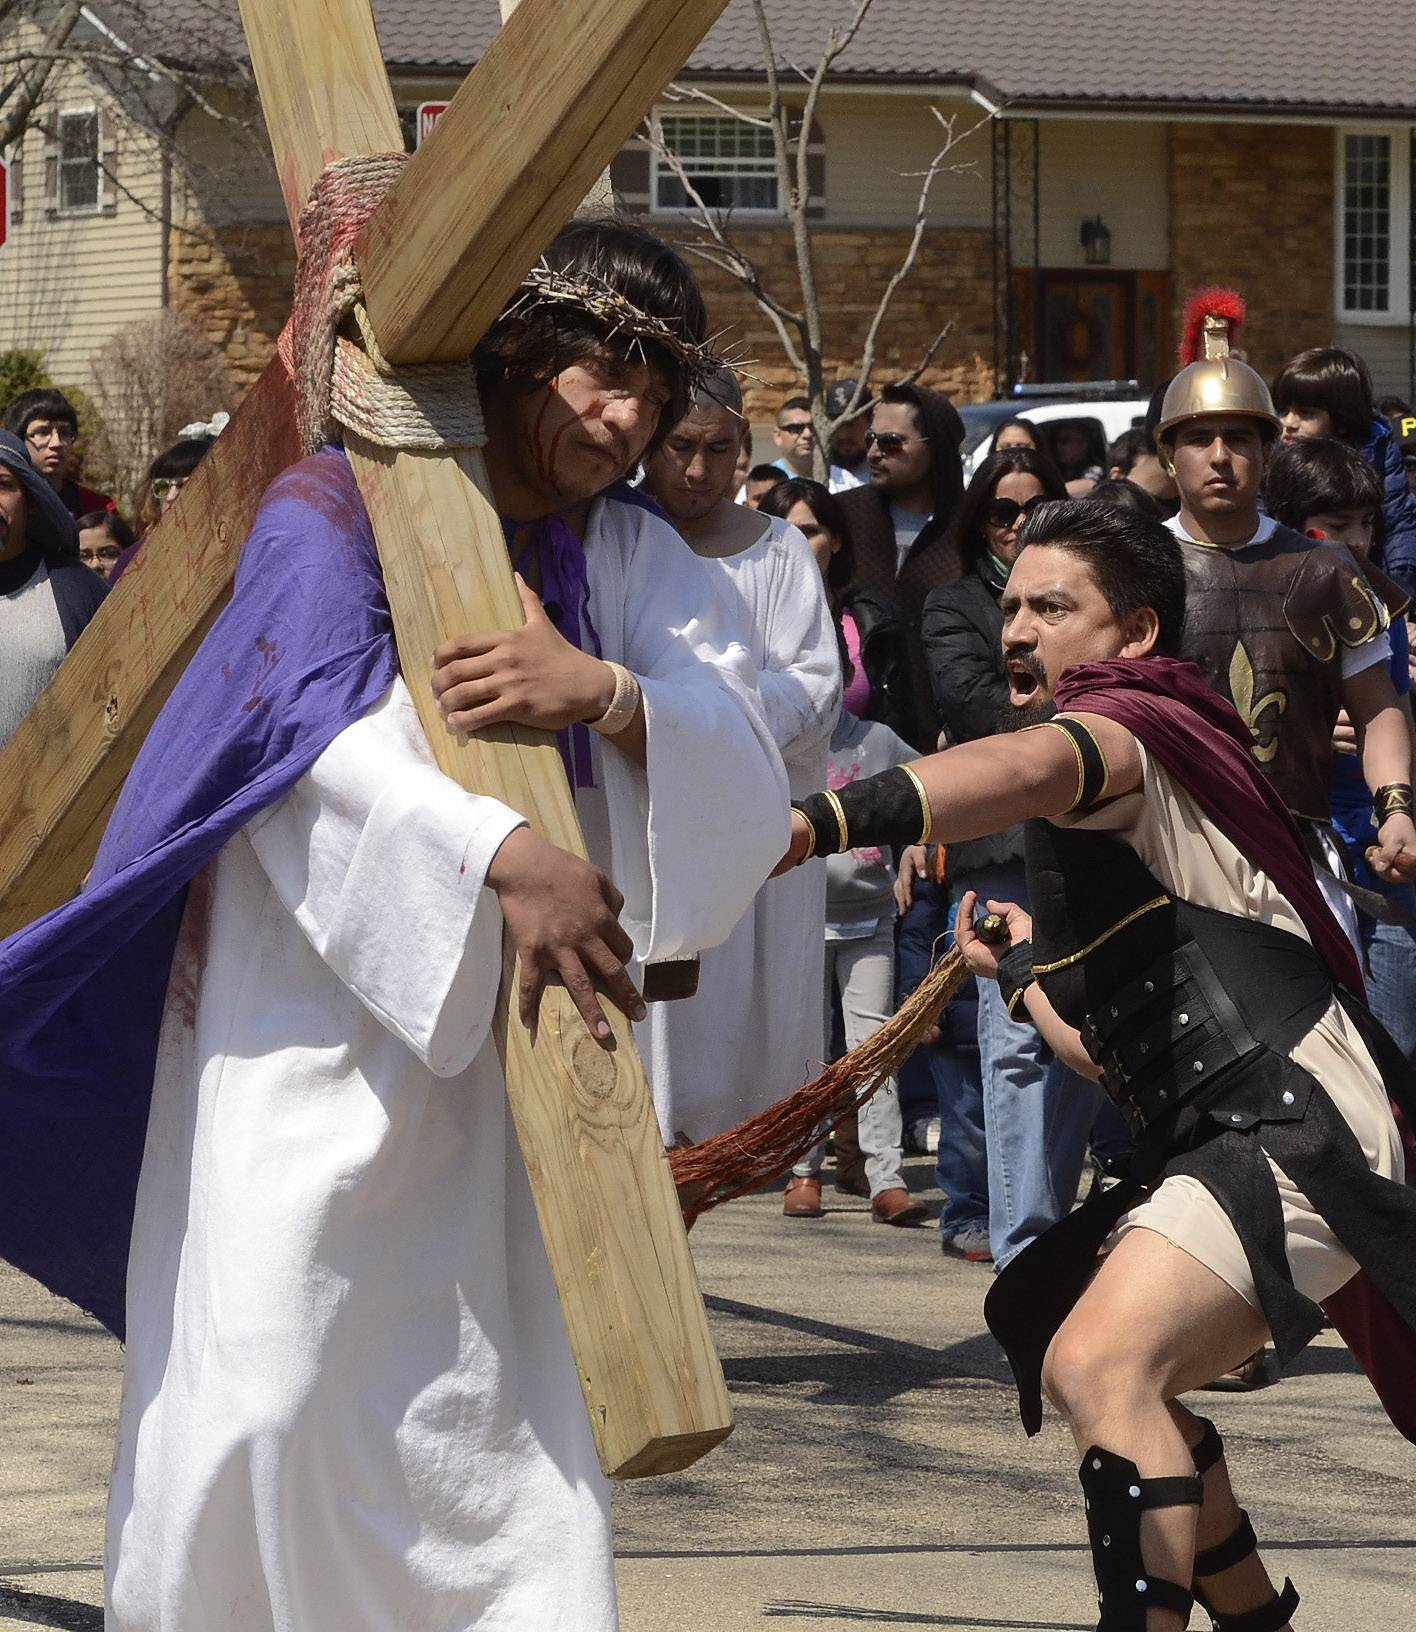 Rubin Callajo, playing the role of Jesus Christ, is whipped by Juvenal Cervantes, acting as a Roman soldier, during a living Stations of the Cross re-enactment on Good Friday by the Mision San Juan Diego in Arlington Heights.